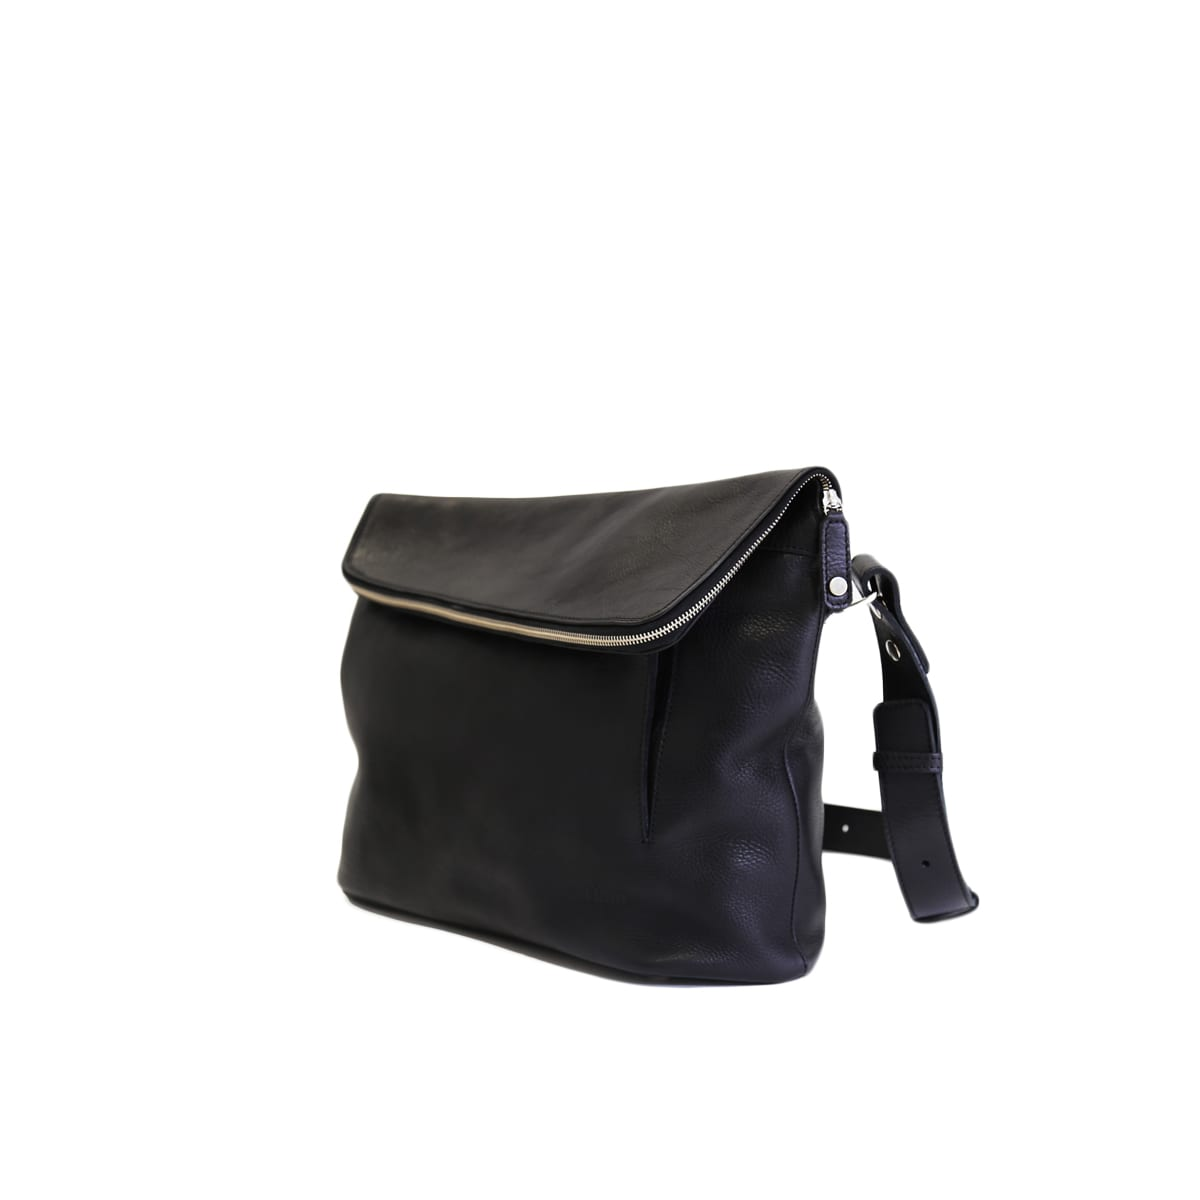 LUMI Theodore Messenger Bag, in black, is created using vegetable tanned leather.